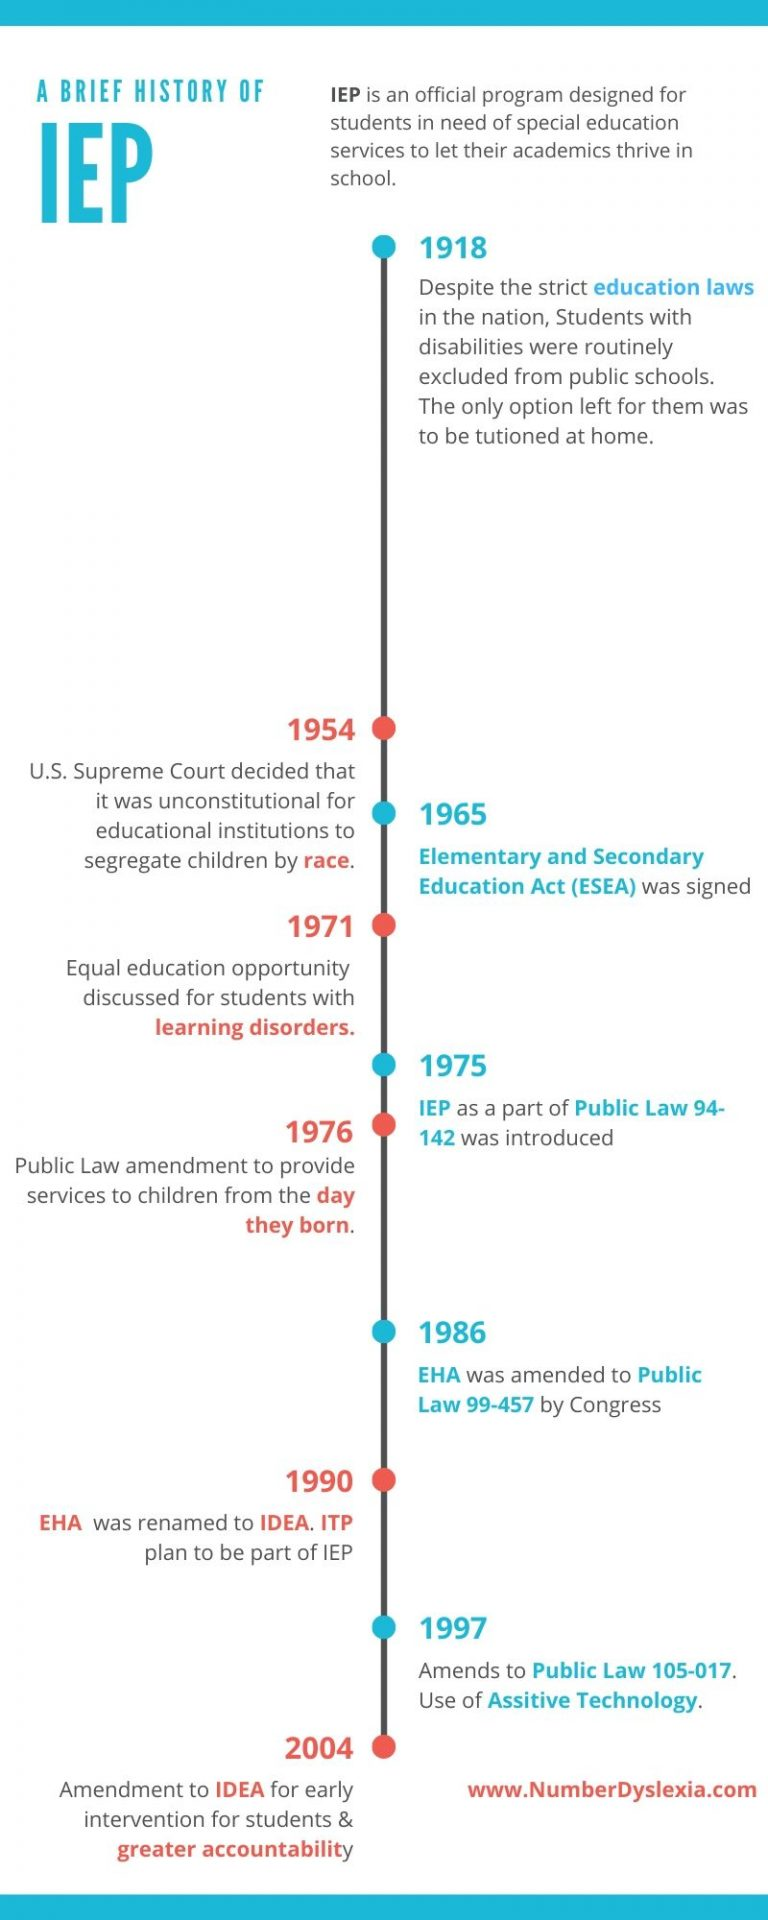 IEP HISTORY TIMELINE INFOGRAPHIC